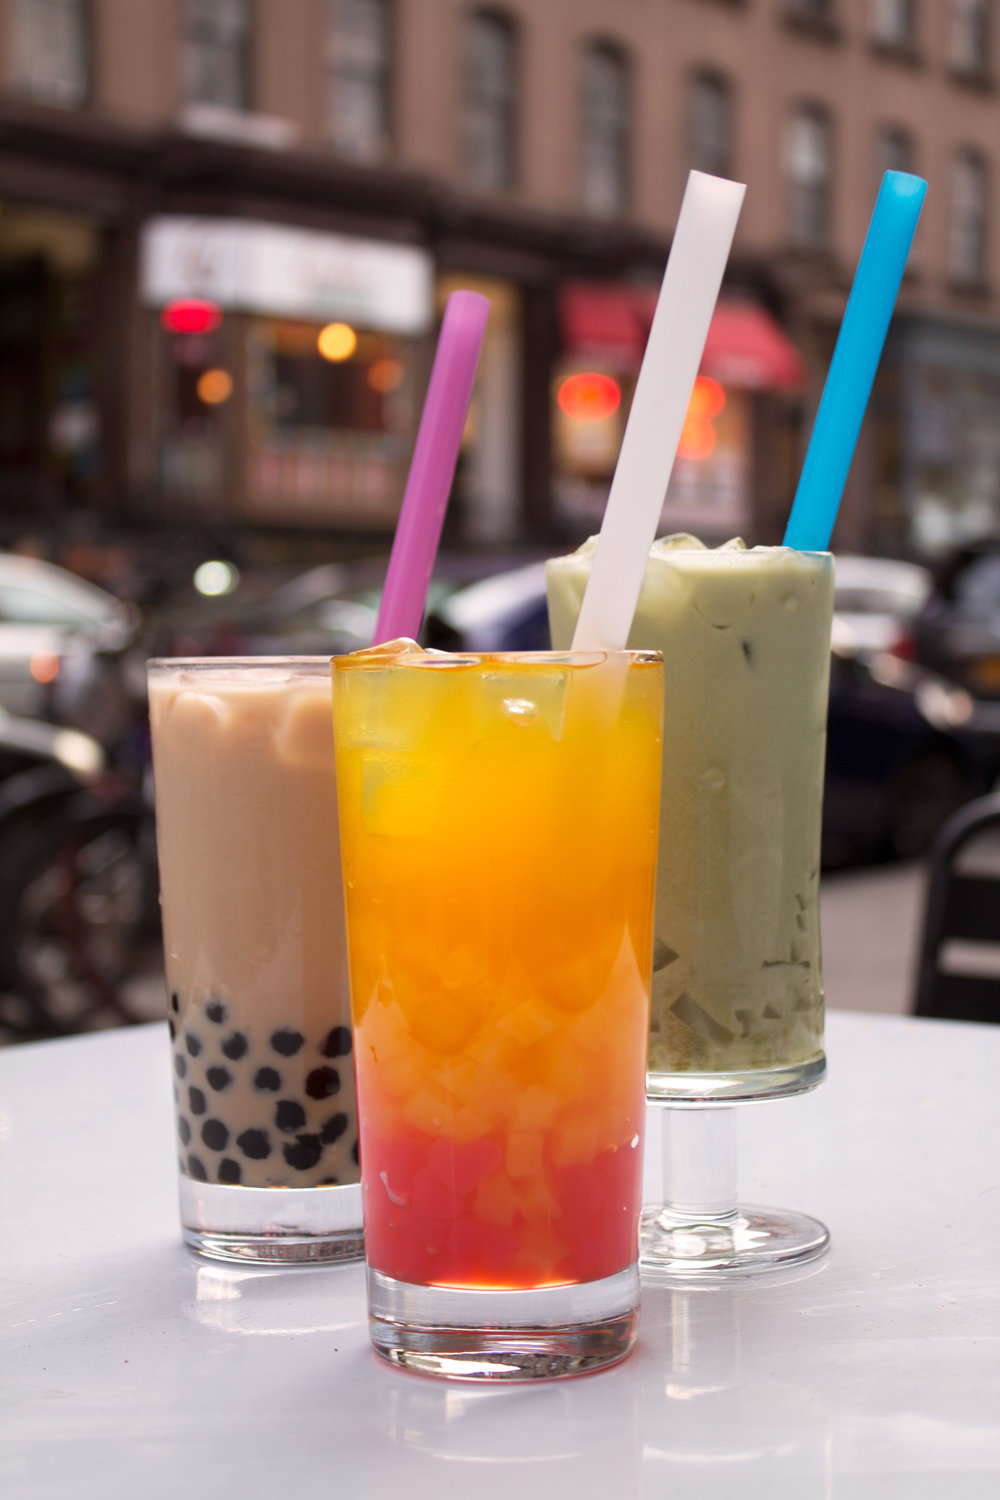 Variety of bubble tea with tapioca or jelly